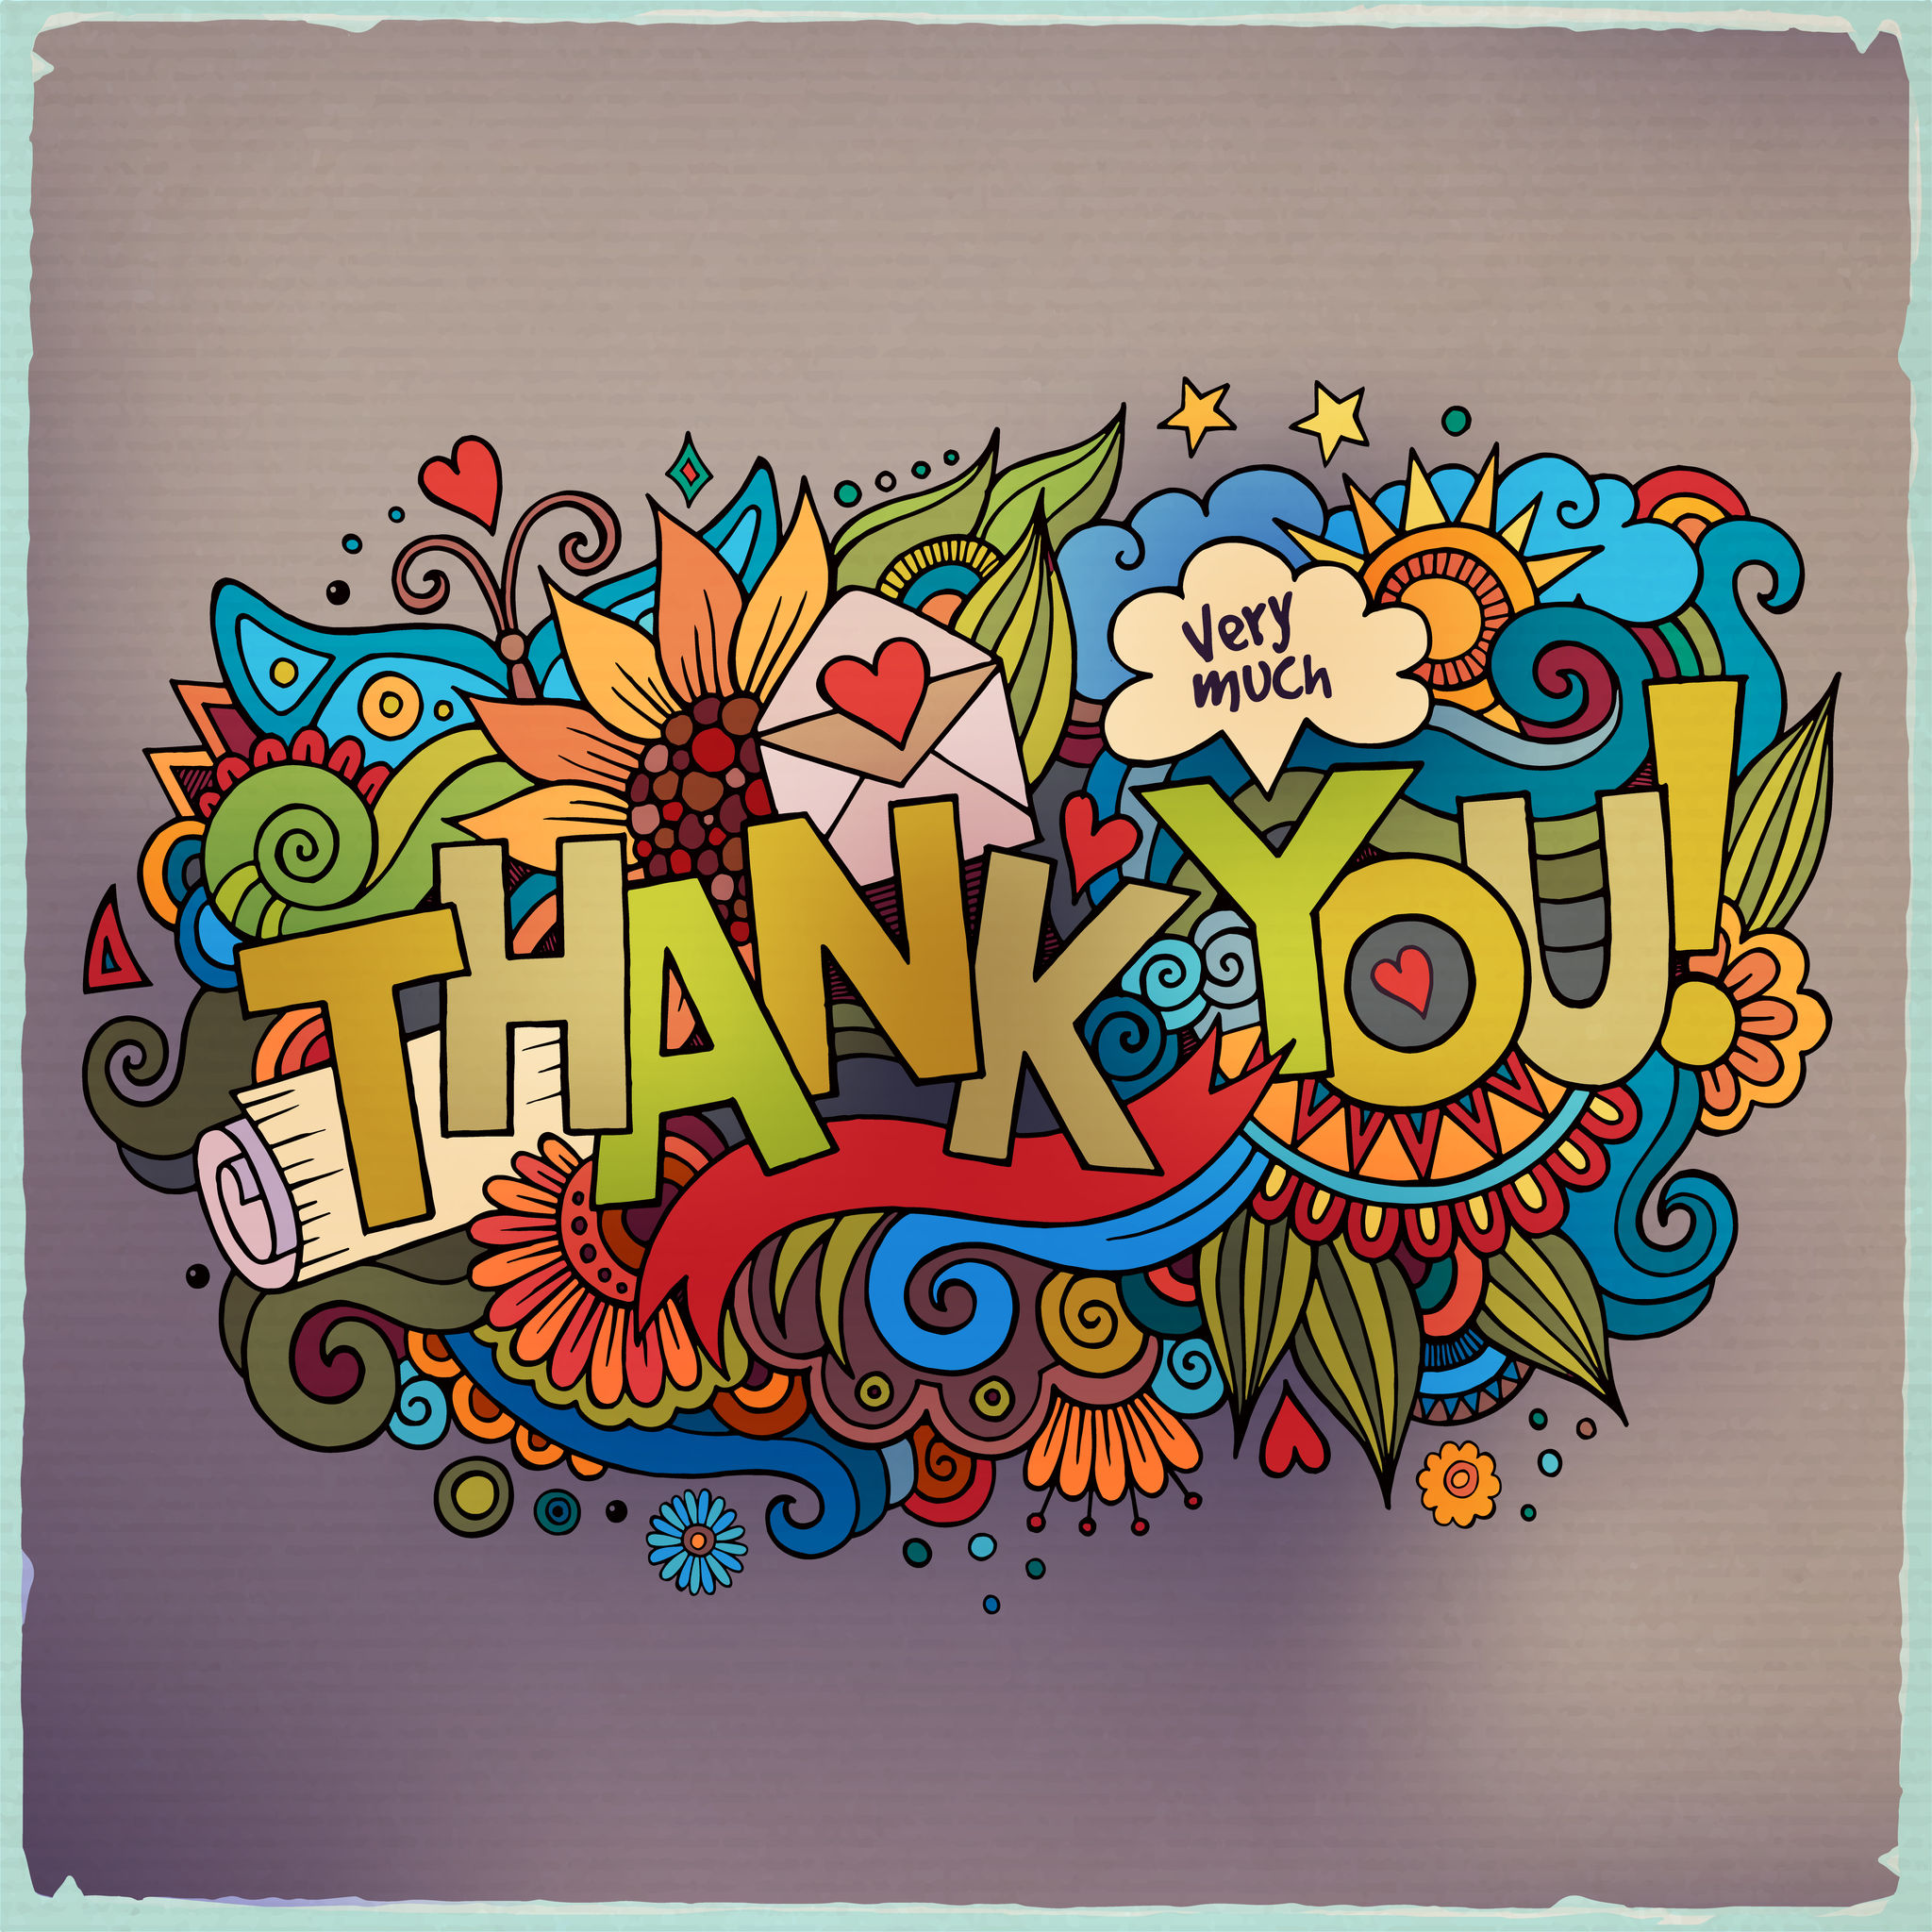 Thank You hand lettering and doodles elements background